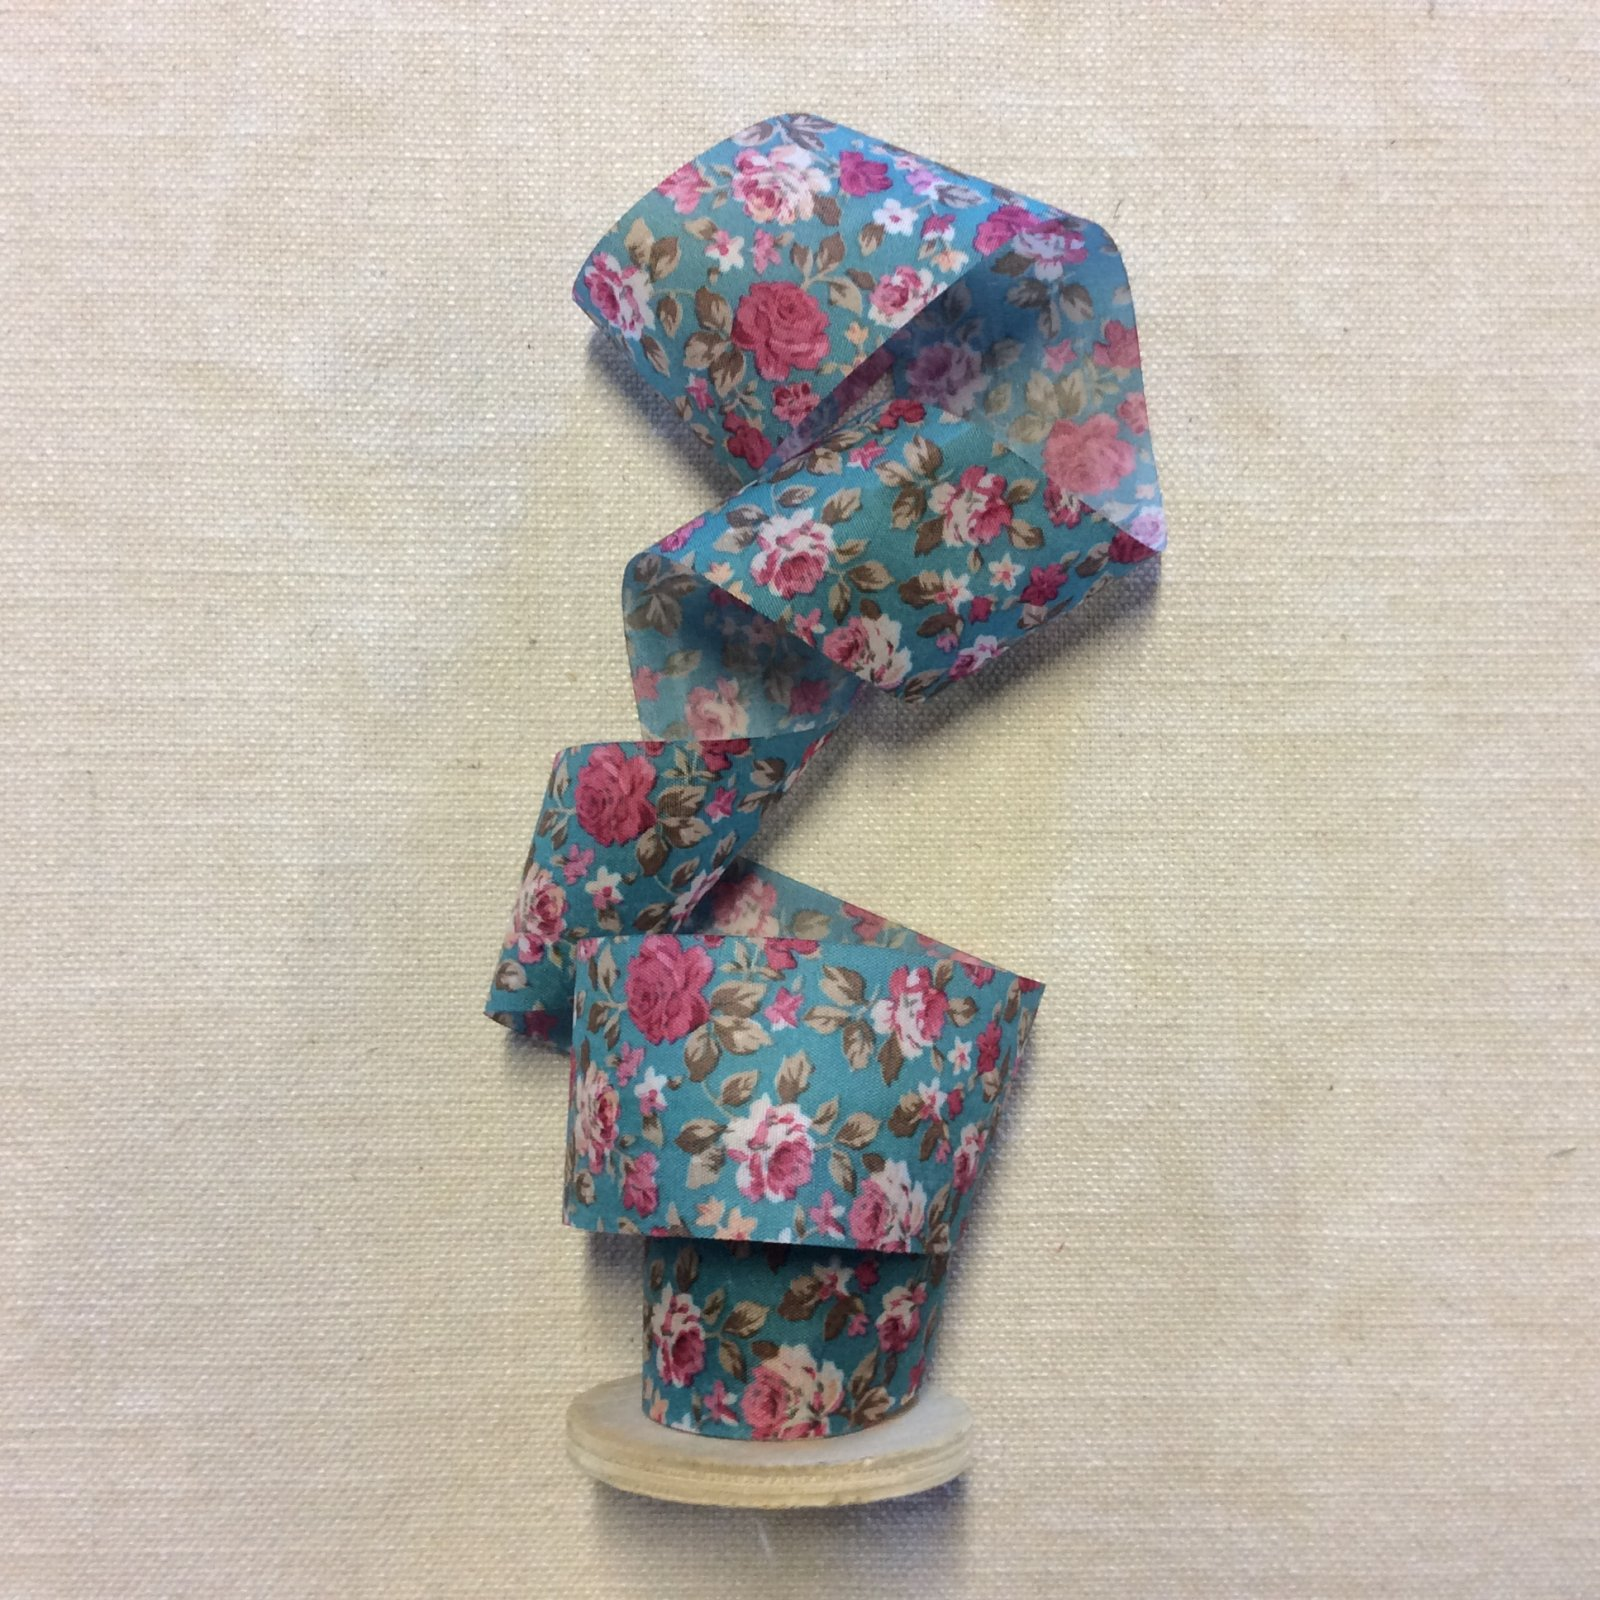 Thin Paperlike Faux Silk Shabby Chic Floral French Country Cabbage Rose Flower 2 Ribbon Trim RIB1365